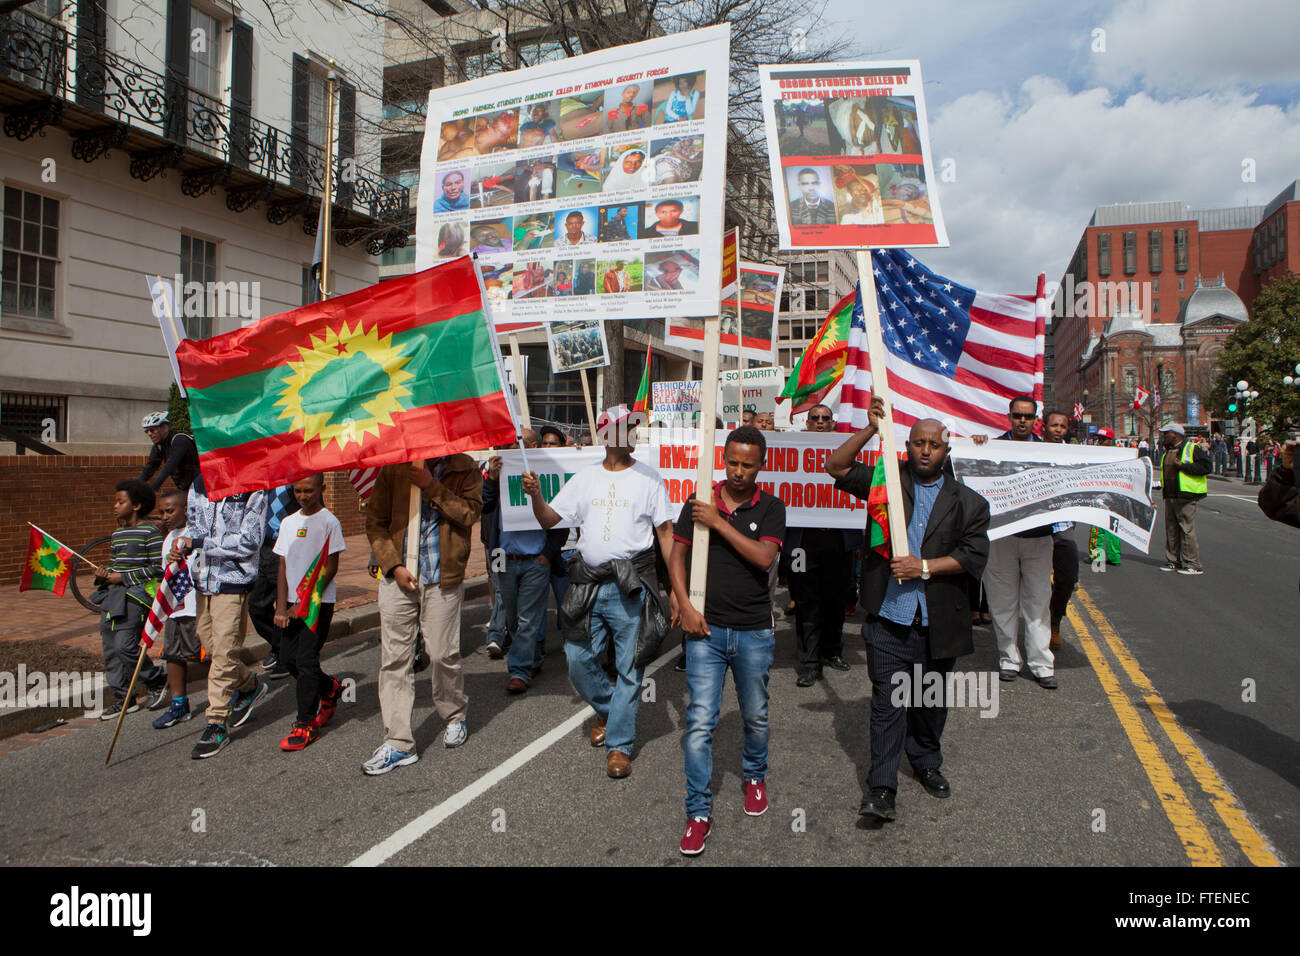 Friday, March 11, 2016, Washington, DC USA: Protest against the Ethiopian government genocidal war in Oromia, Ethiopia - Stock Image